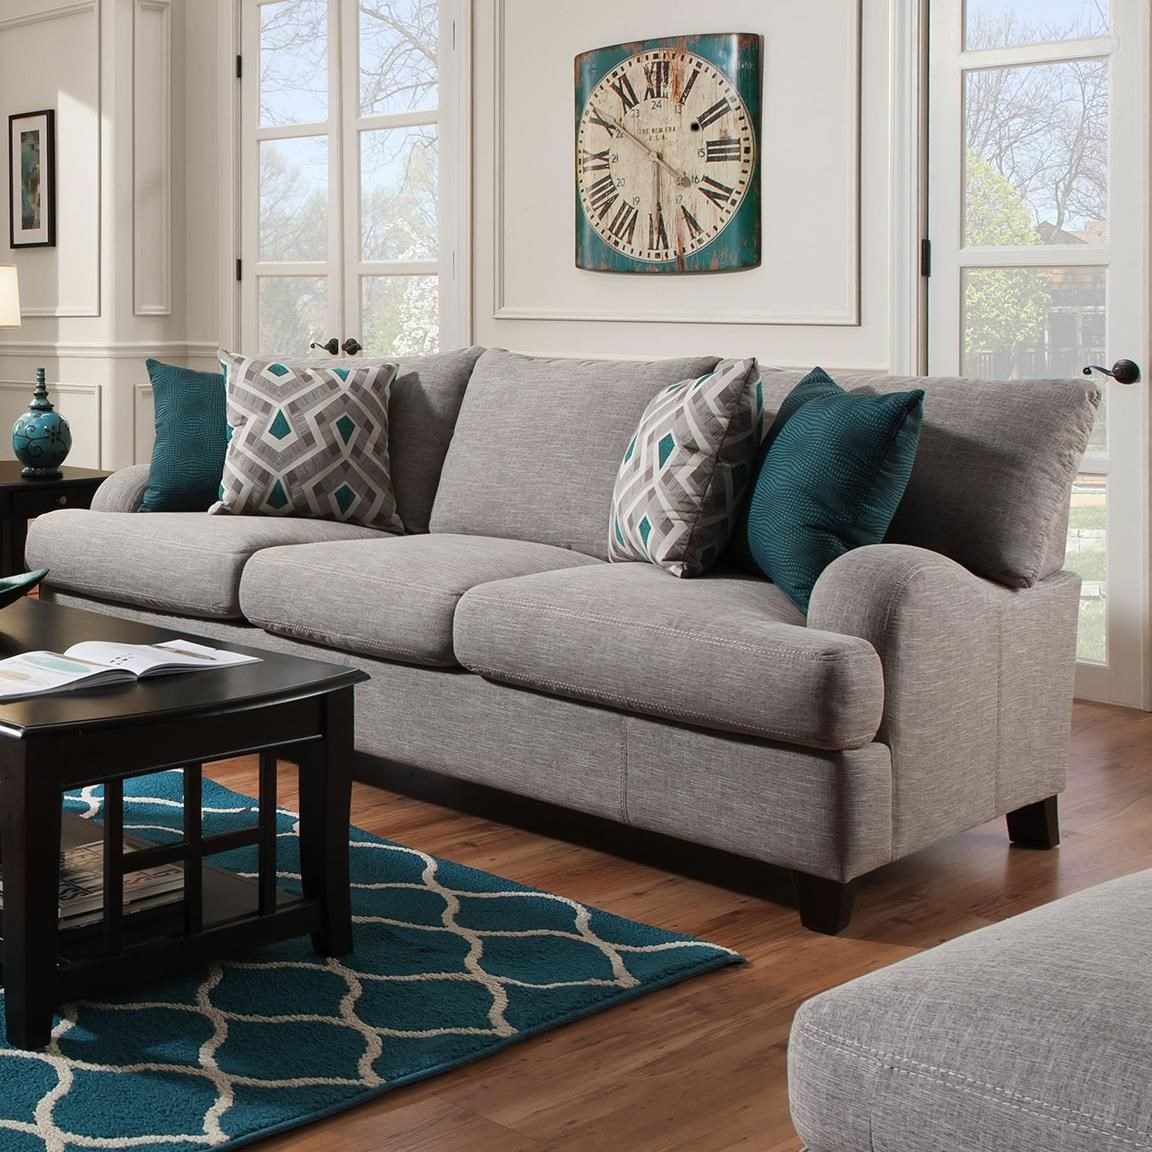 Attrayant Franklin Paradigm Sofa With Bold Accent Pillows